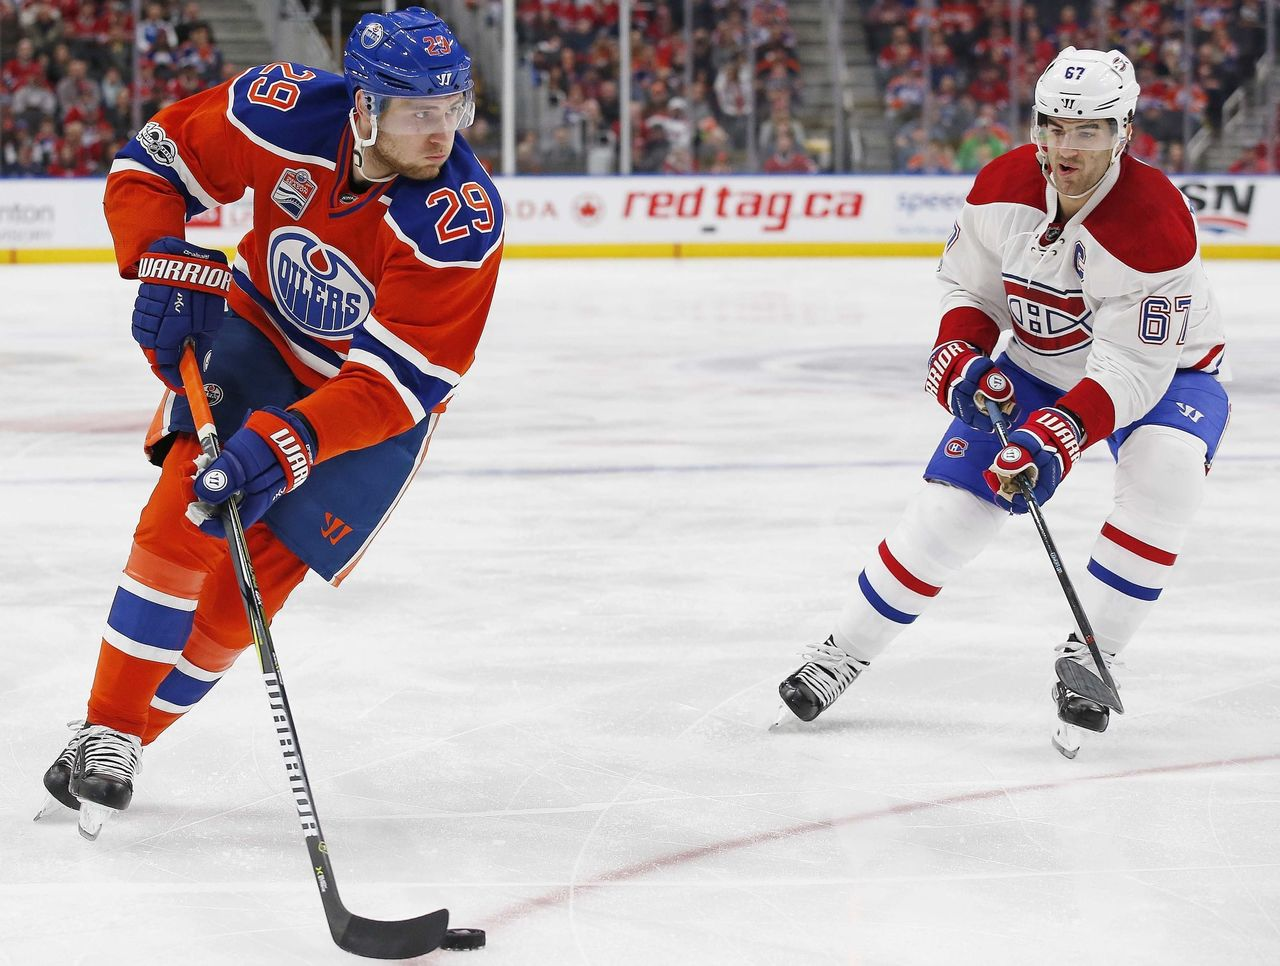 Cropped 2017 03 13t001440z 579590291 nocid rtrmadp 3 nhl montreal canadiens at edmonton oilers